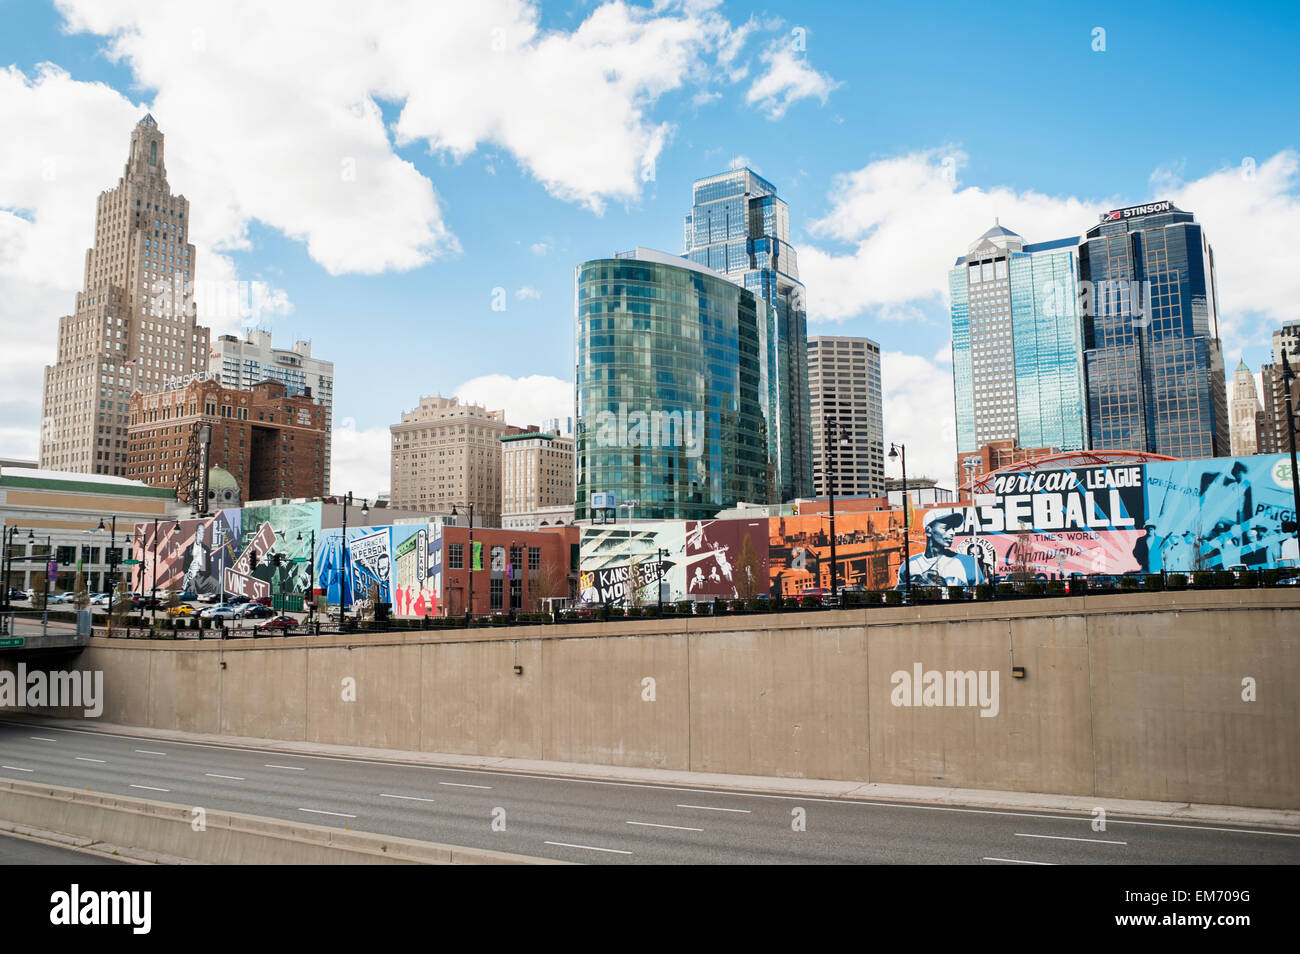 painted murals on buildings with skyscrapers in the background kansas city missouri united states of america